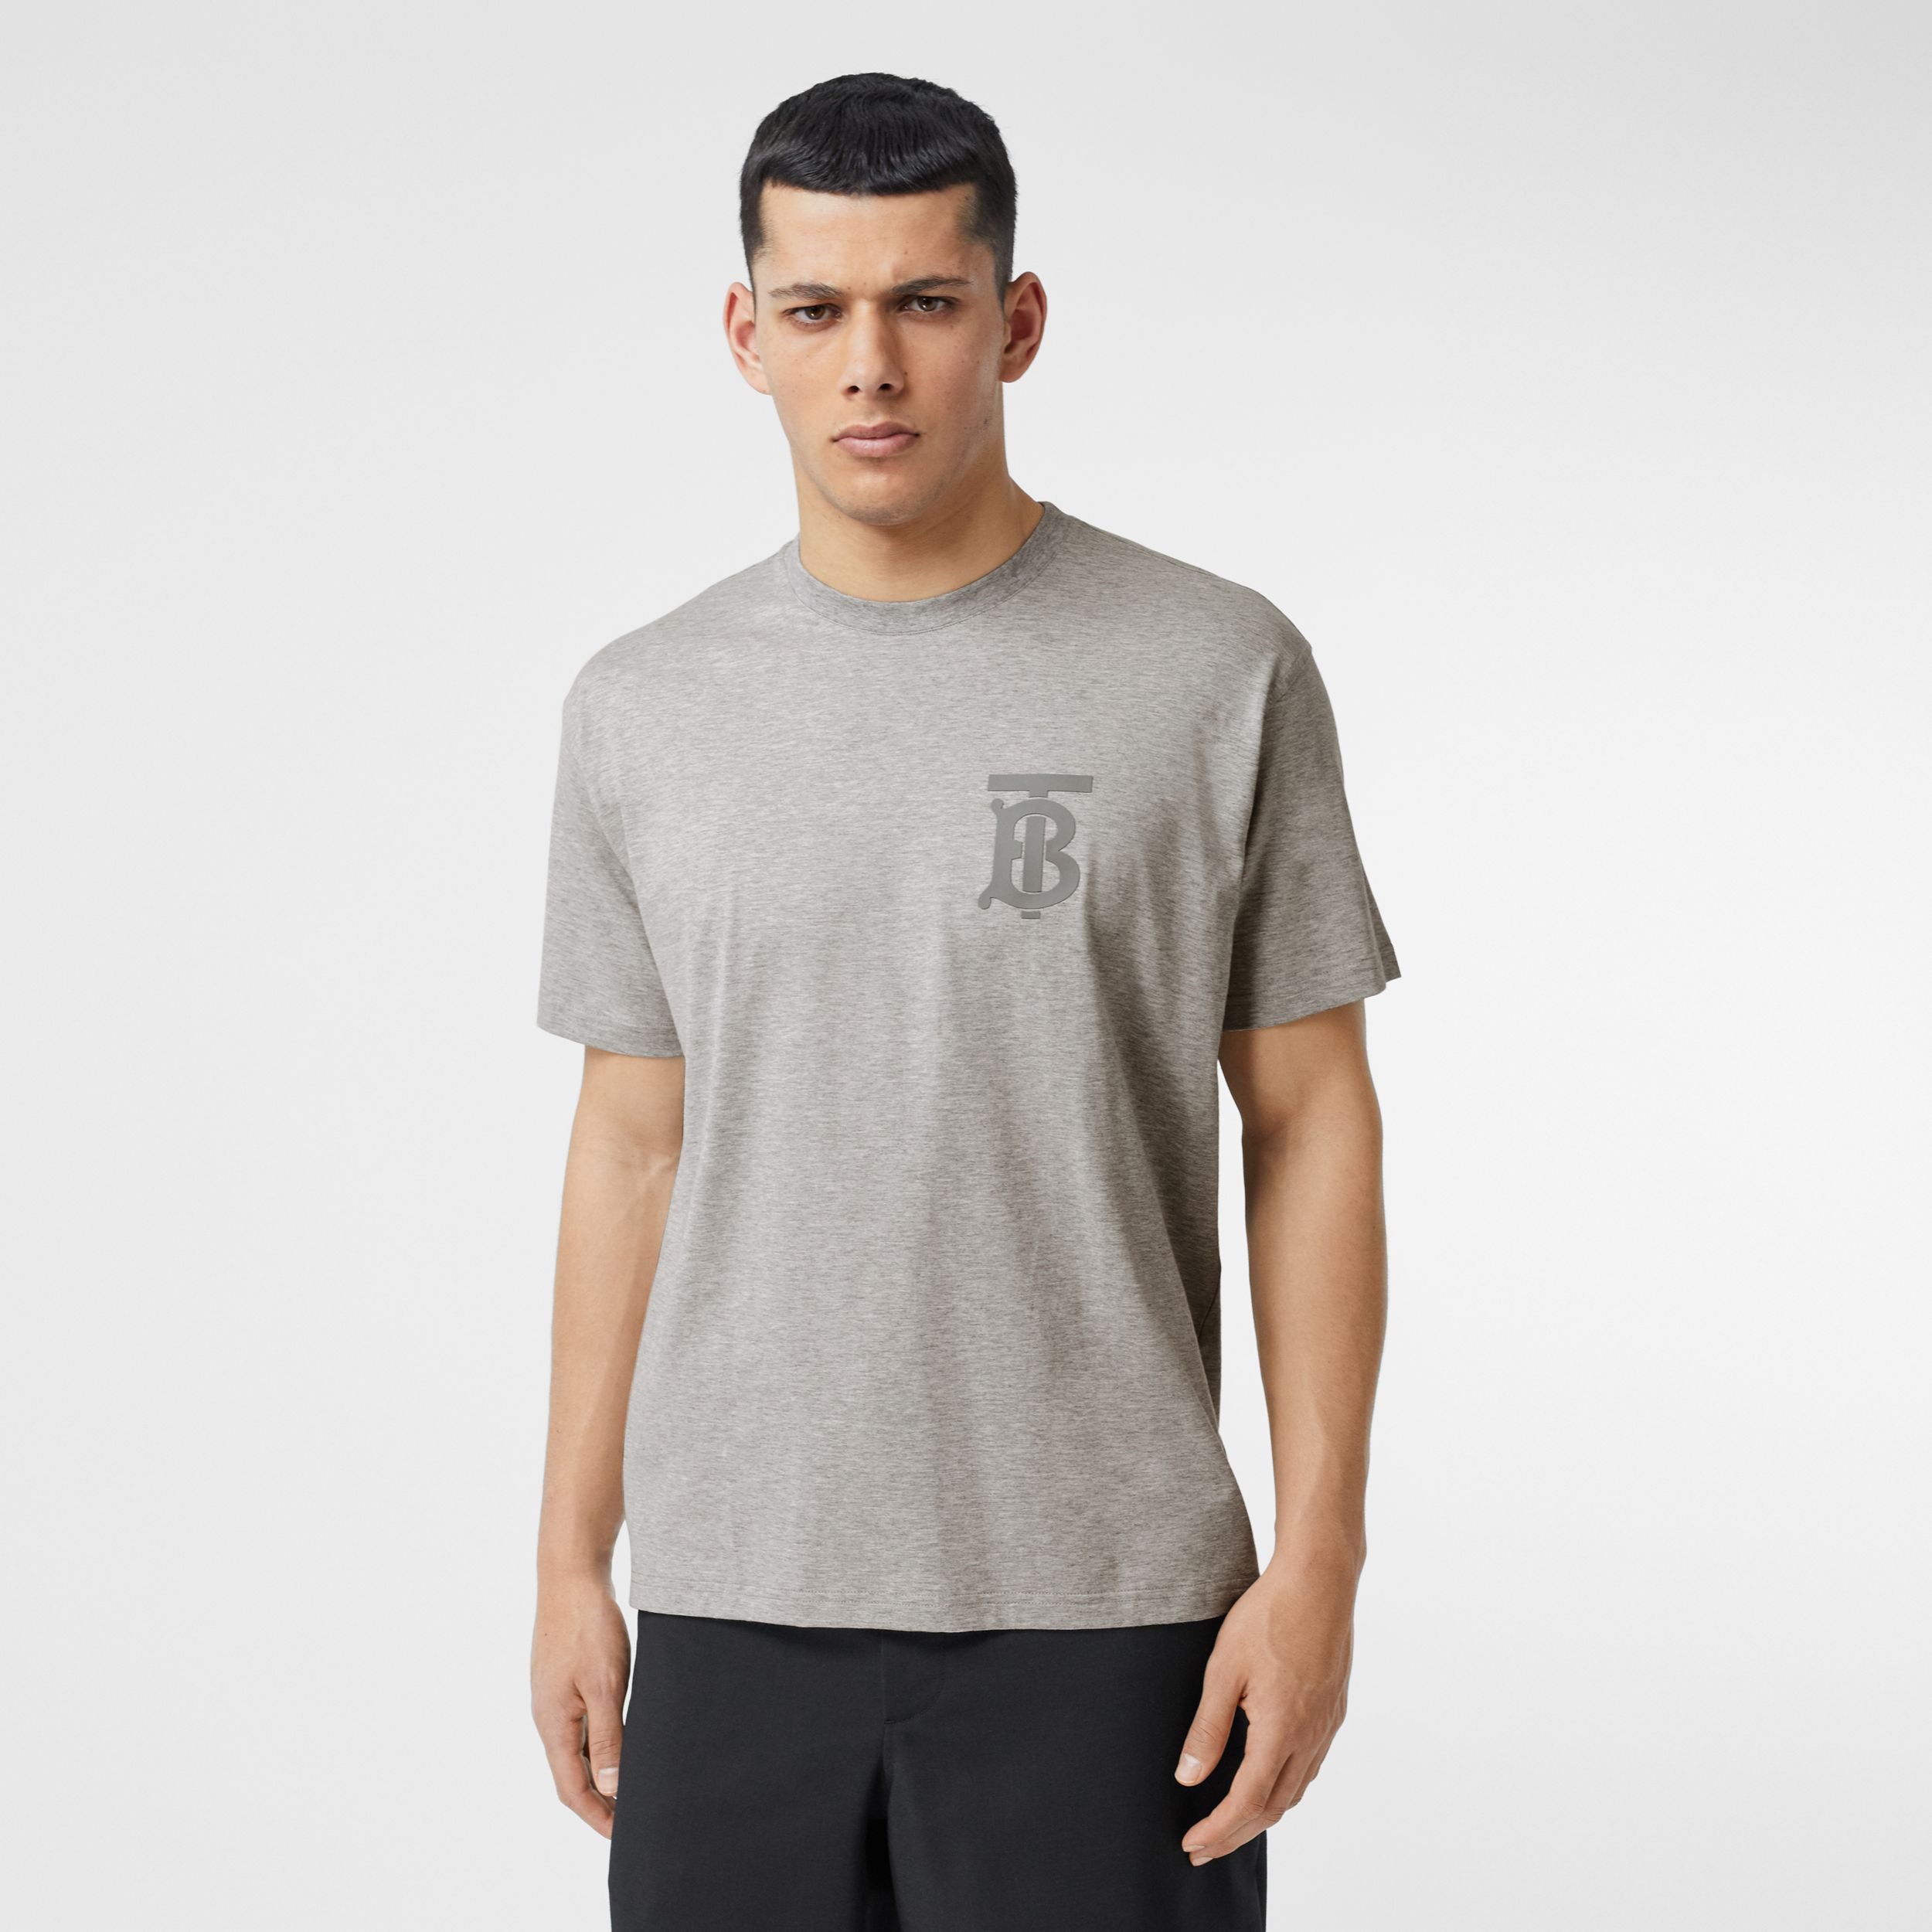 Monogram Motif Cotton Oversized T-shirt in Pale Grey Melange - Men | Burberry Hong Kong S.A.R. - 1